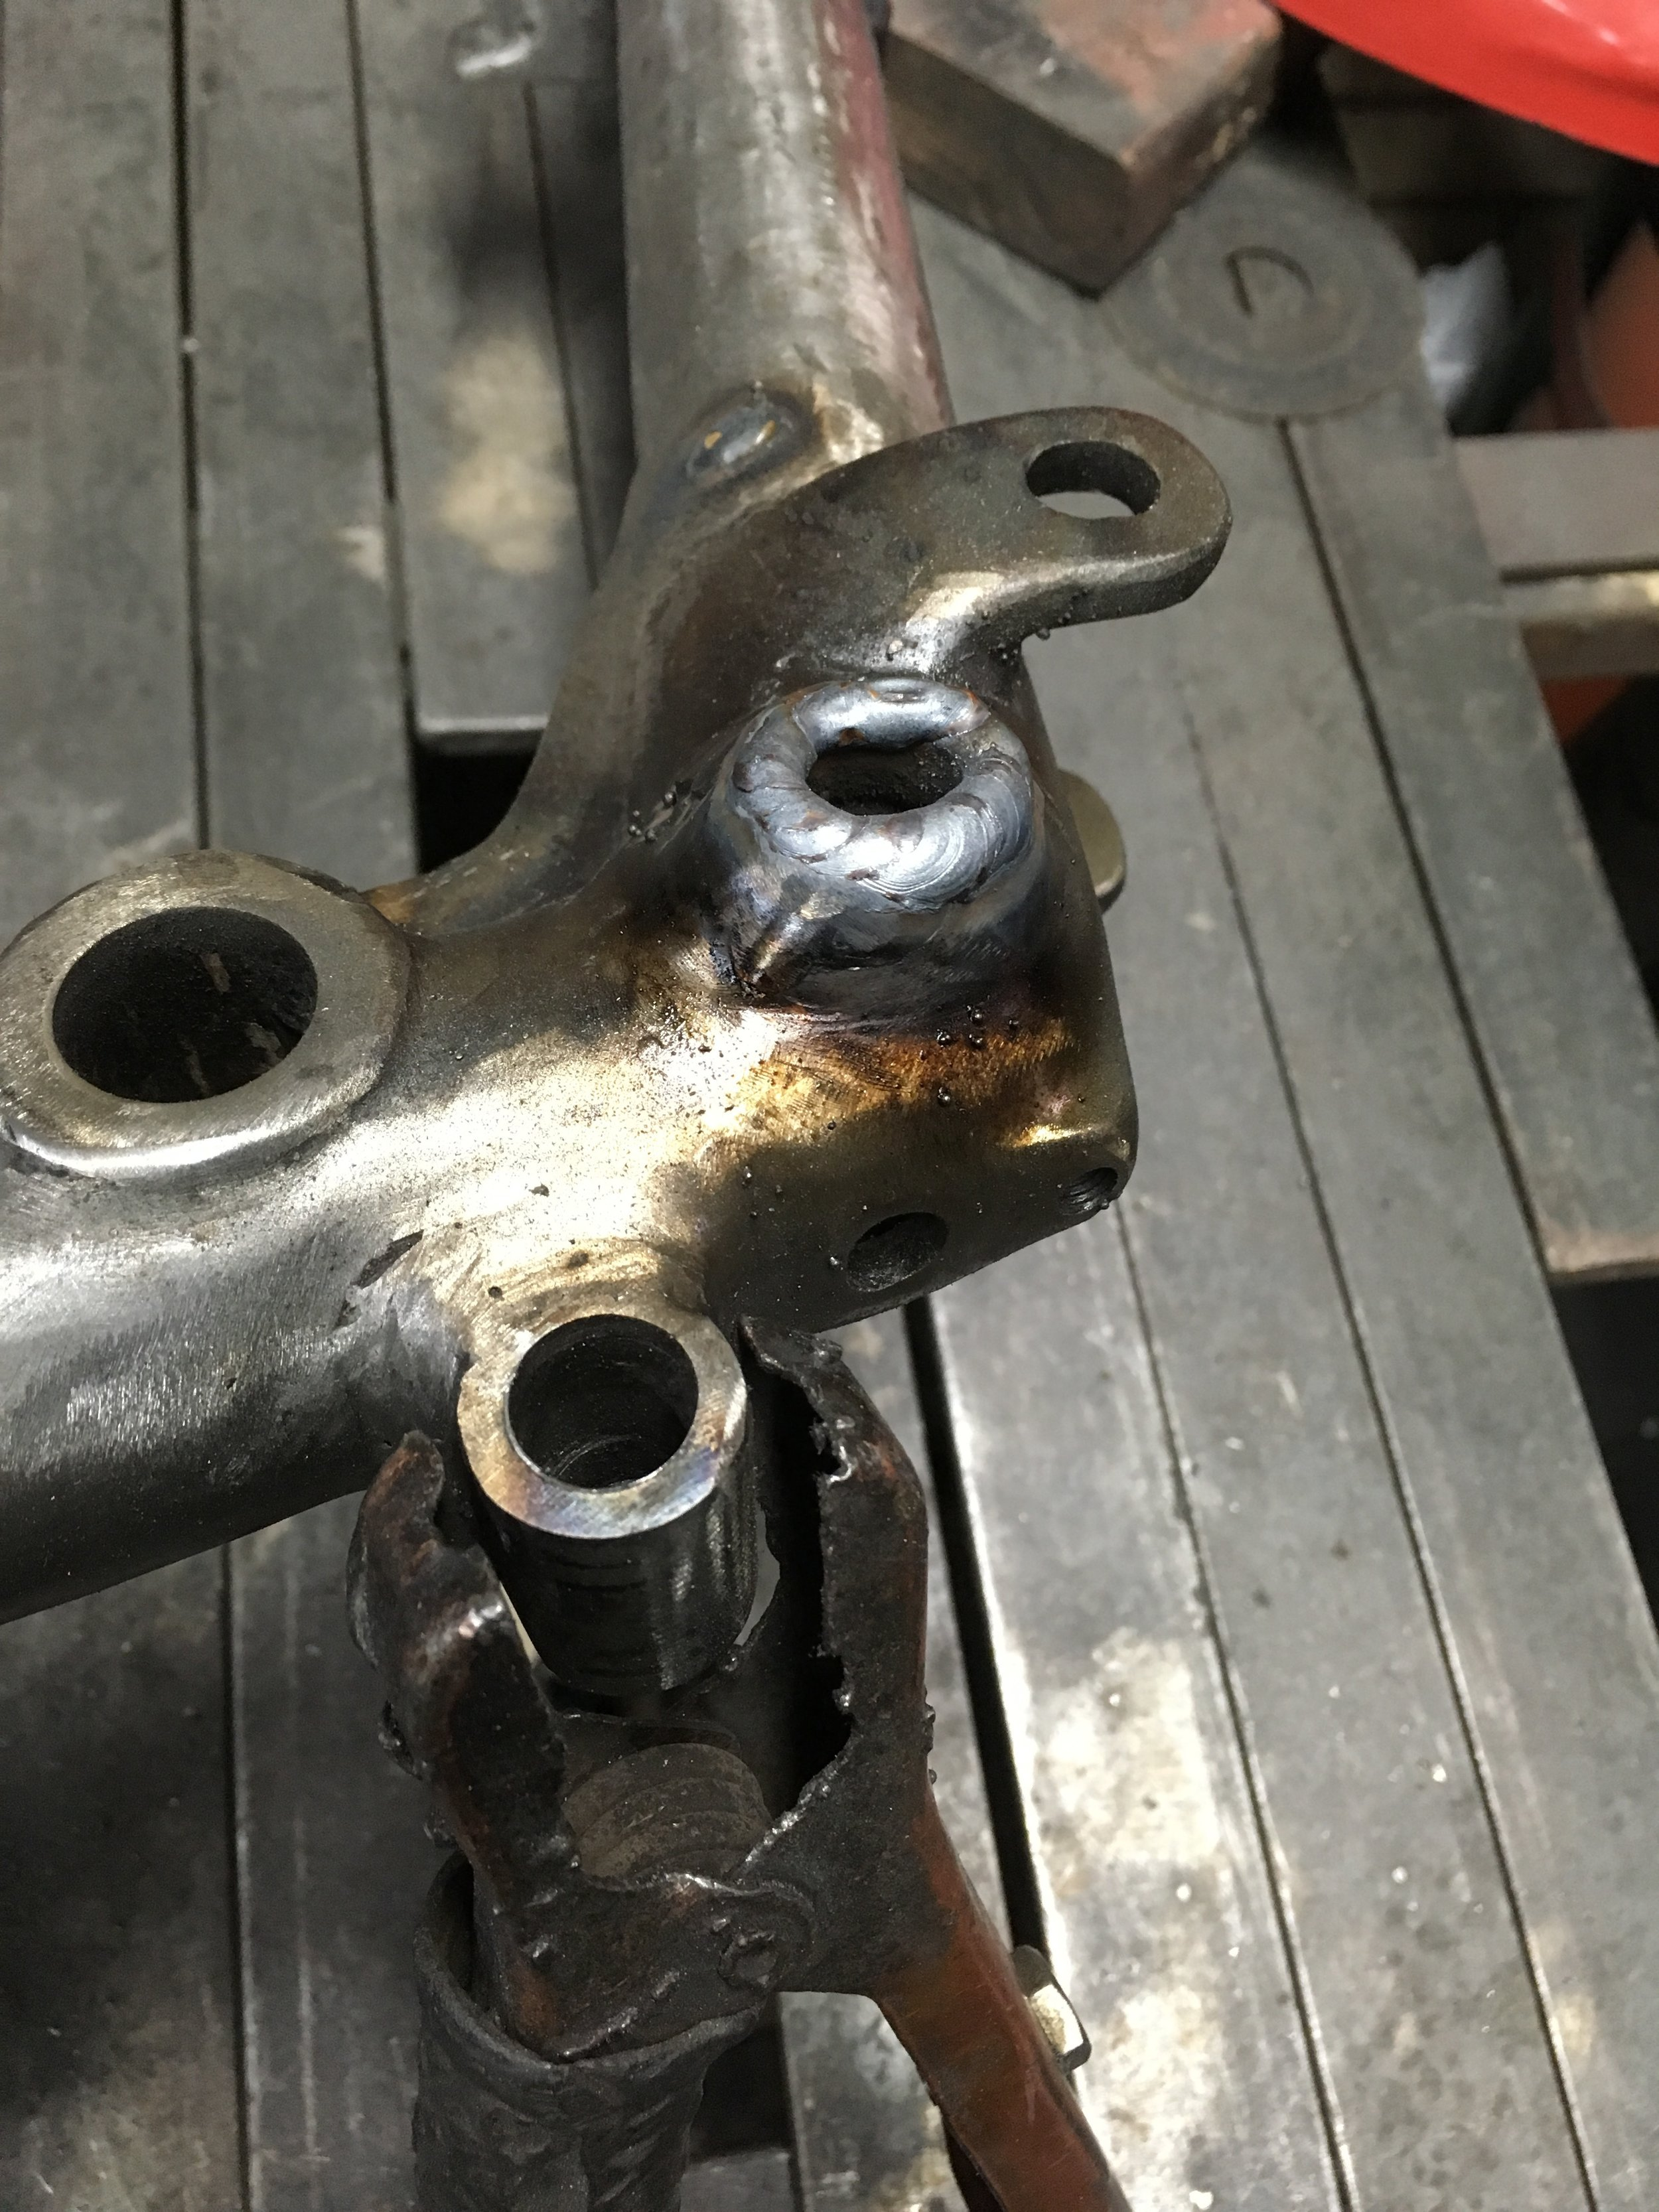 The rear frame mount boss needed a little love. Some welding and grinding to make for a tighter fit between the front and back frame.